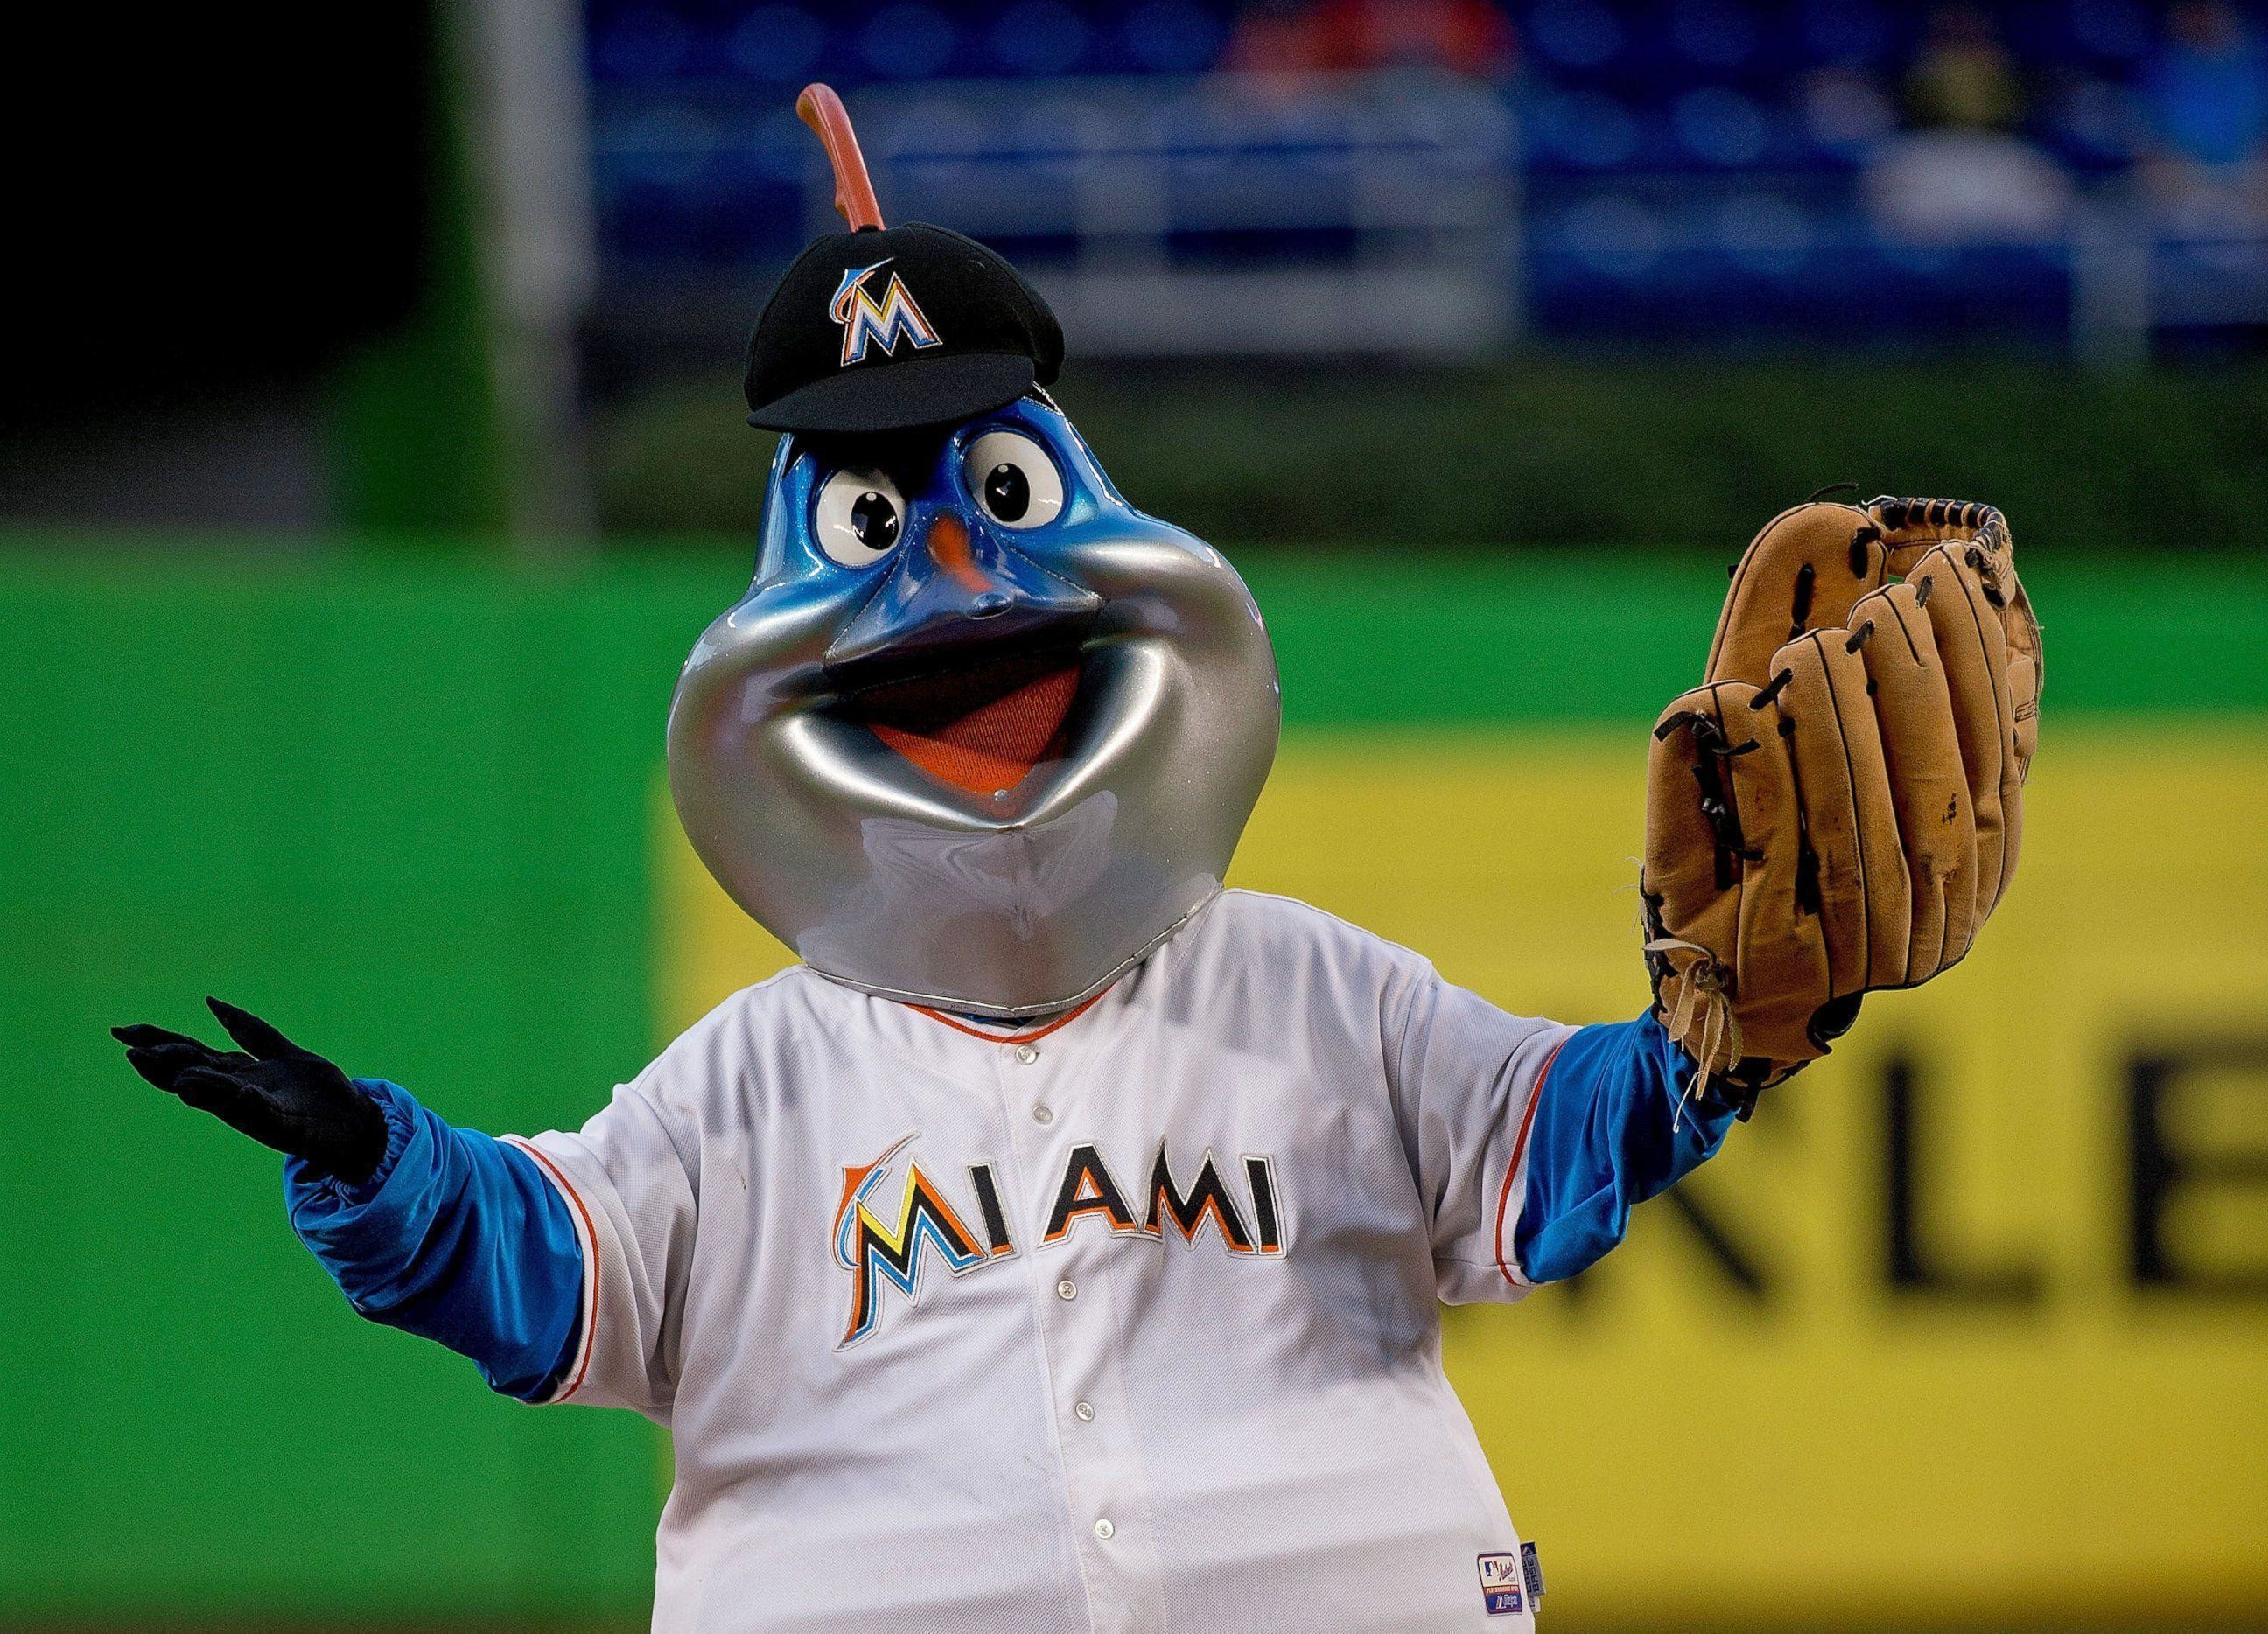 Miami Marlins Wallpapers Images Photos Pictures Backgrounds